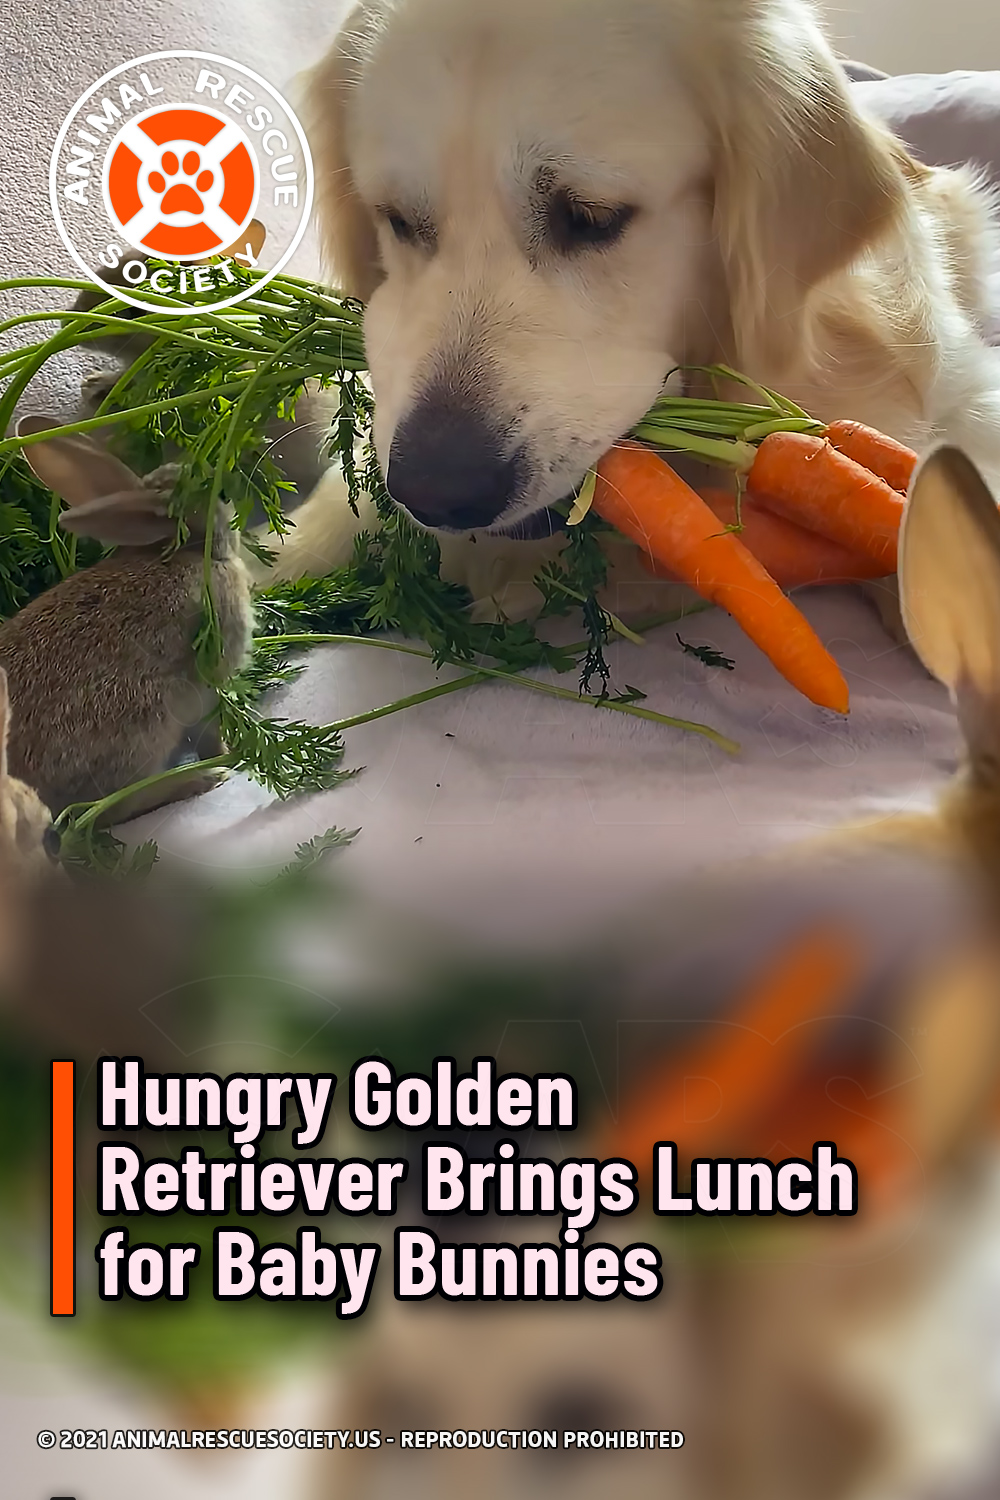 Hungry Golden Retriever Brings Lunch for Baby Bunnies